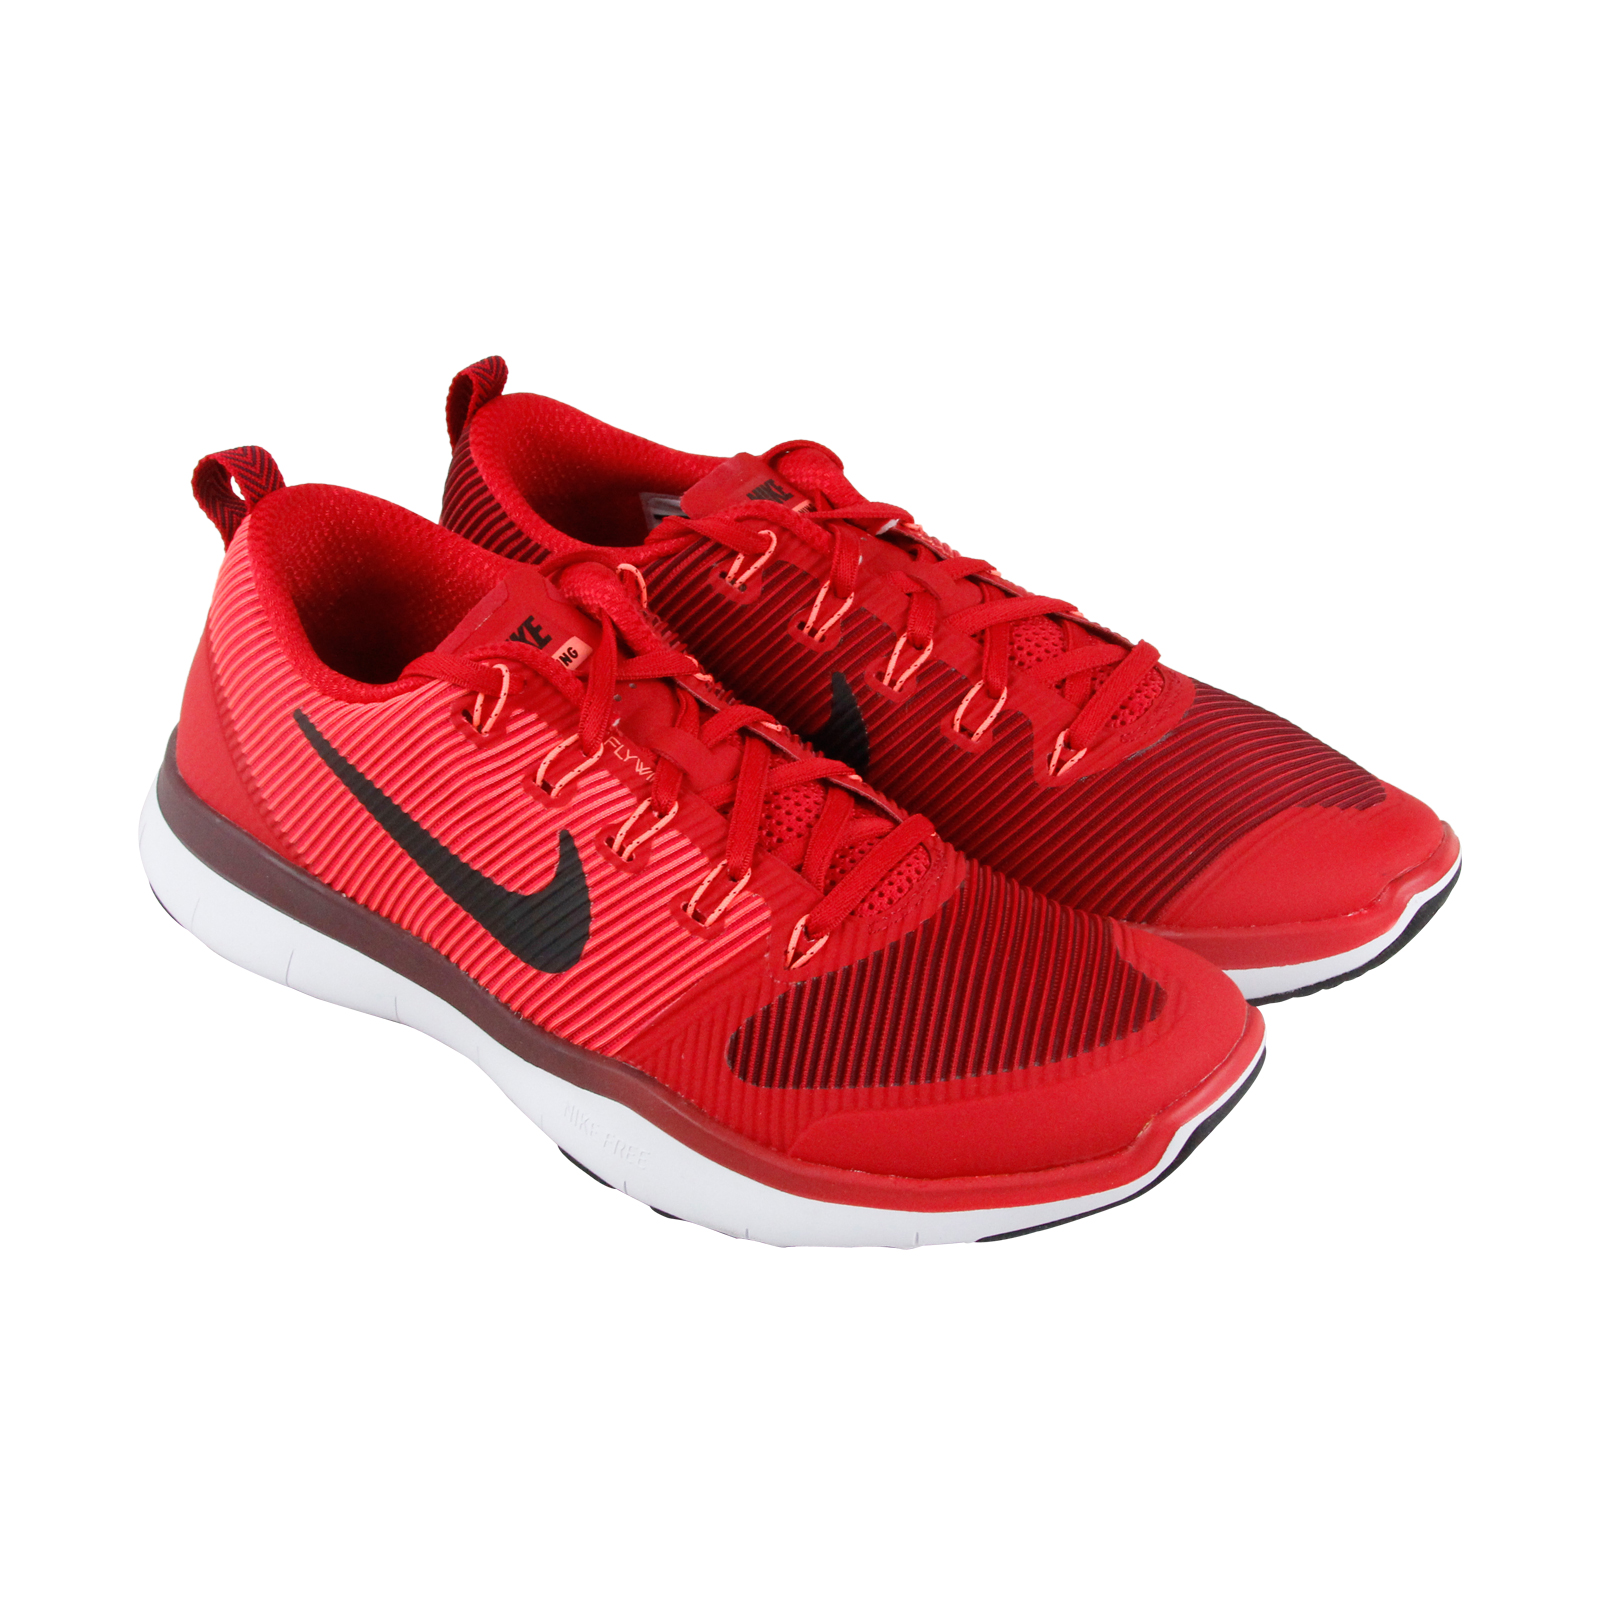 New Nike Mens Free Train Versatility Trainer Shoes 833258-606 sz 10.5 Univ. Red